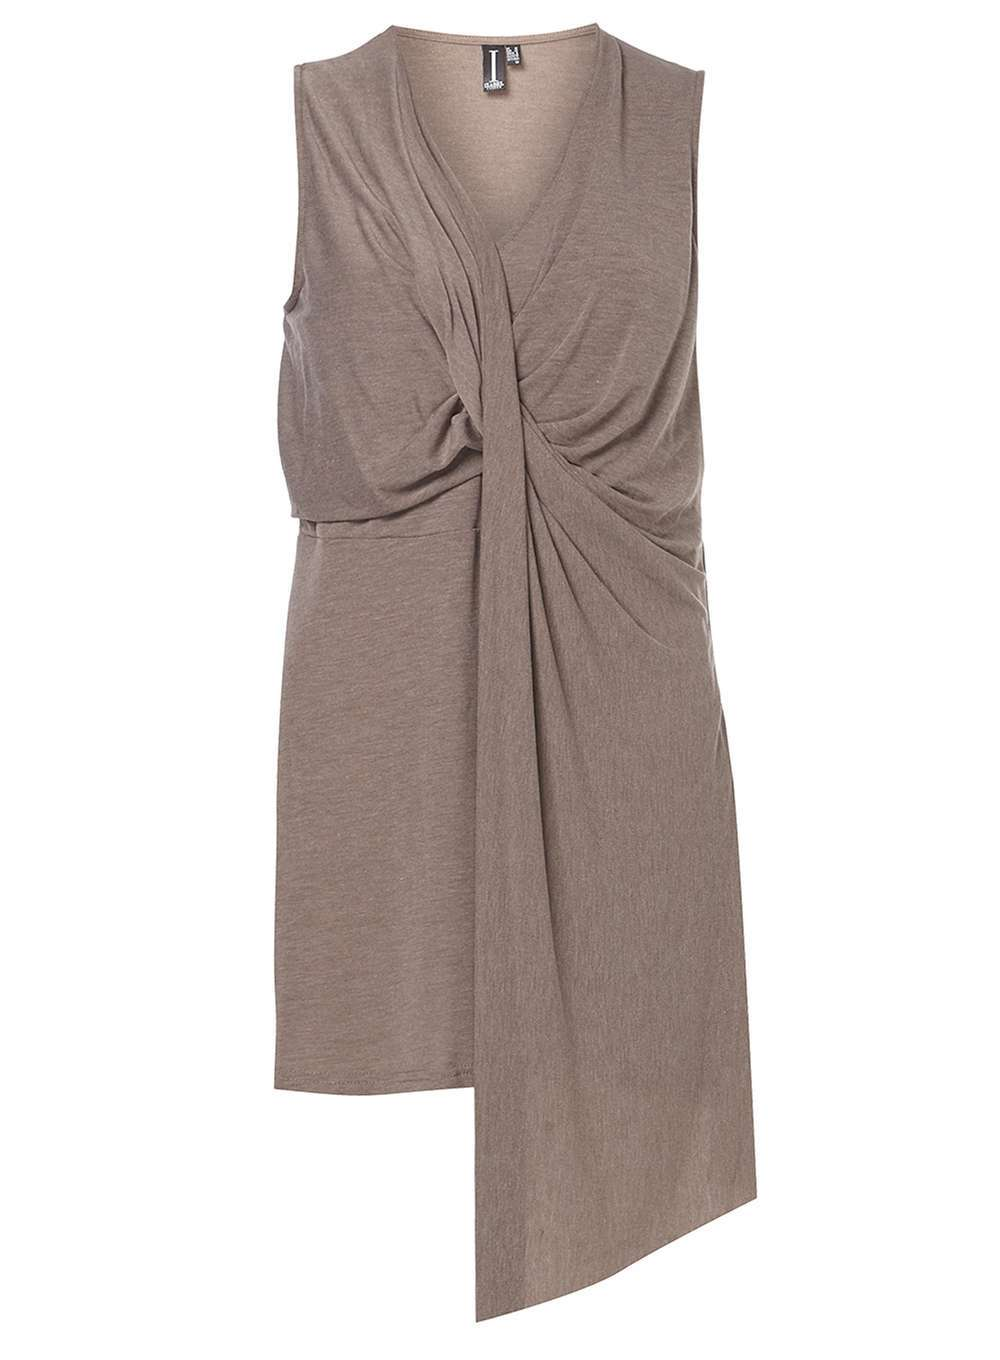 Womens **Izabel London Latte Top White - neckline: v-neck; pattern: plain; sleeve style: sleeveless; waist detail: twist front waist detail/nipped in at waist on one side/soft pleats/draping/ruching/gathering waist detail; predominant colour: taupe; occasions: casual, creative work; style: top; fit: body skimming; length: mid thigh; sleeve length: sleeveless; bust detail: tiers/frills/bulky drapes/pleats; pattern type: fabric; texture group: jersey - stretchy/drapey; fibres: viscose/rayon - mix; season: a/w 2016